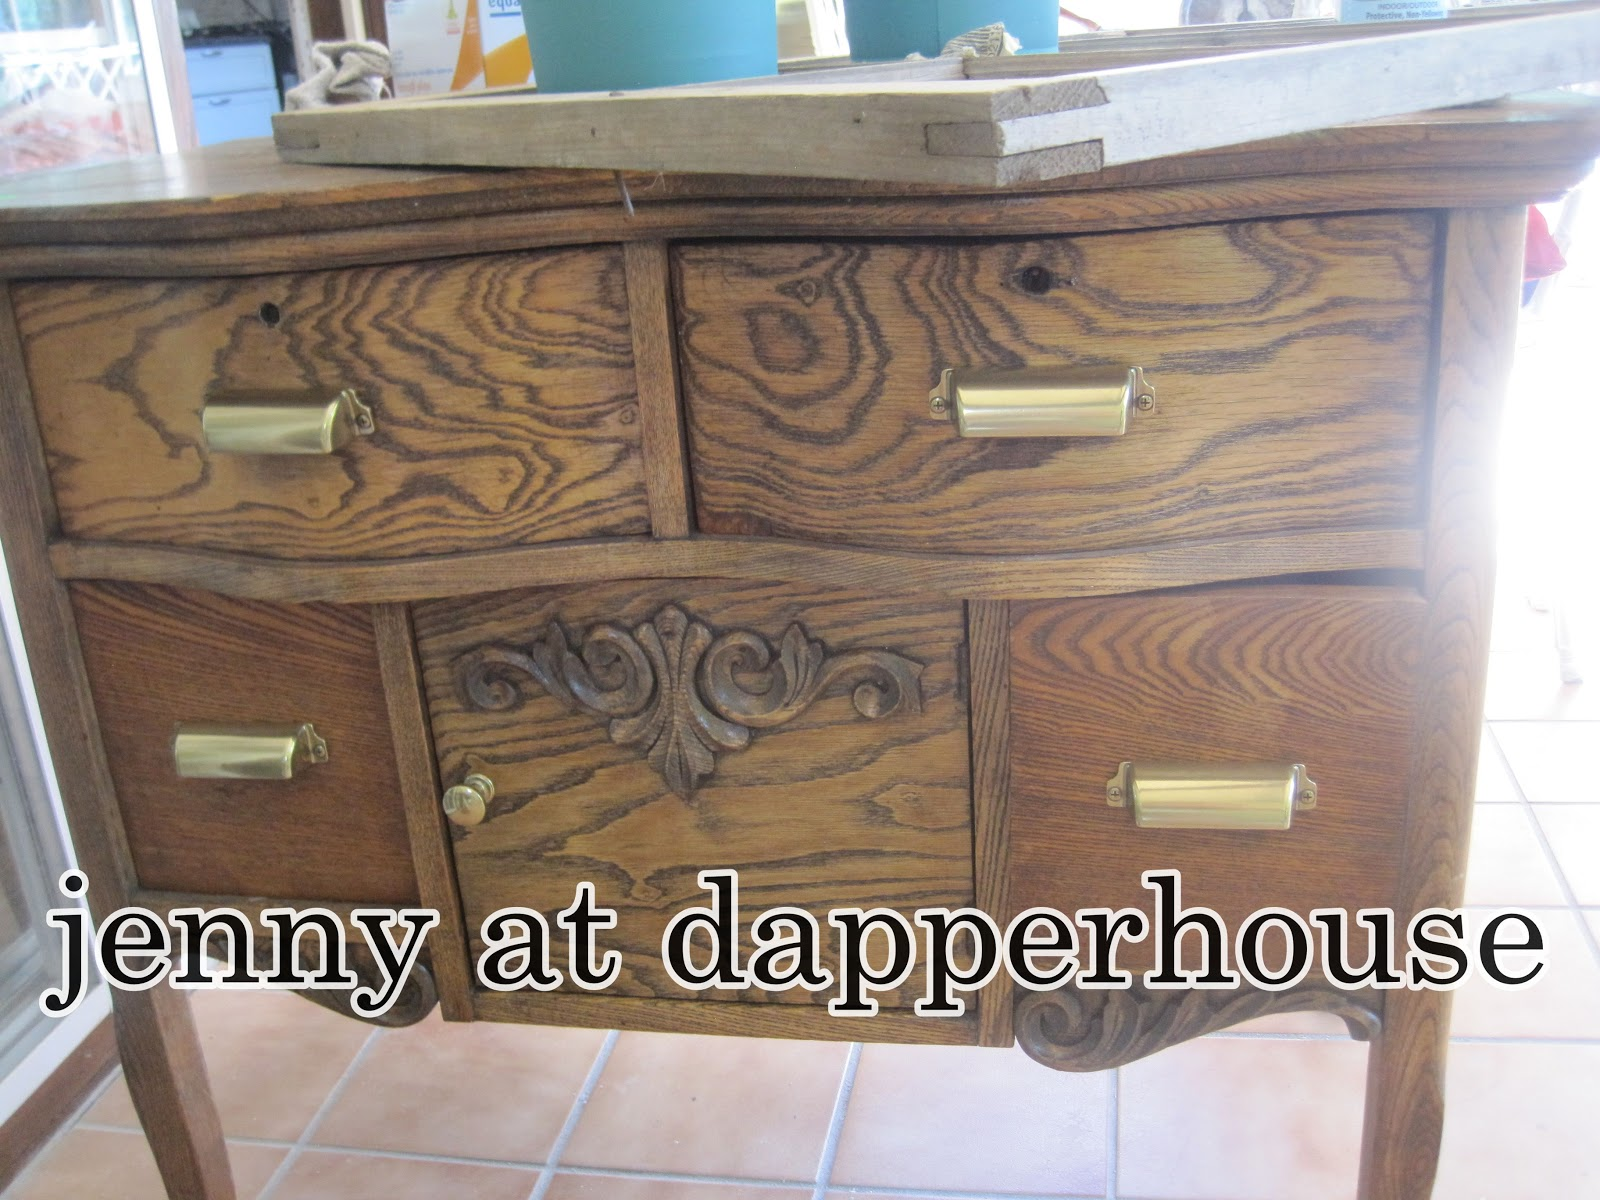 Dapperhouse Annie Sloan Chalk Paint Furniture Re Do Before